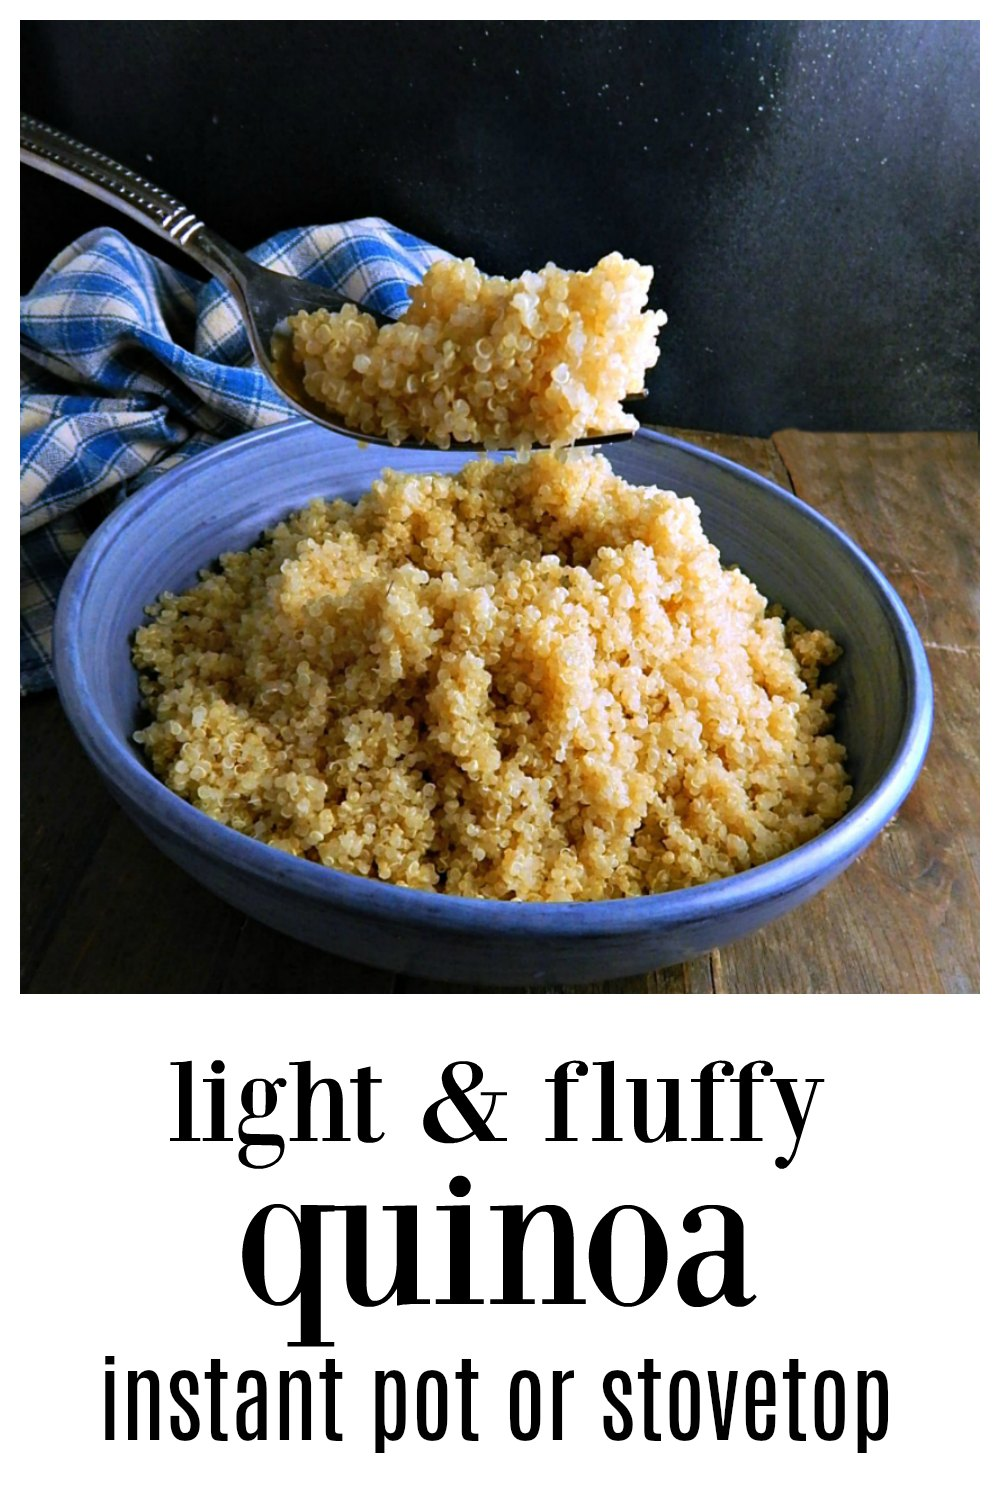 Perfect light & fluffy Quinoa IS possible with this fast and easy recipe for the Instant Pot or the Stove. Make in any amount; great for meal prep! #PerfectQuinoa #PerfectInstantPotQuinoa #PerfectInstantPotStoveTop #Light&FluffyQuinoa